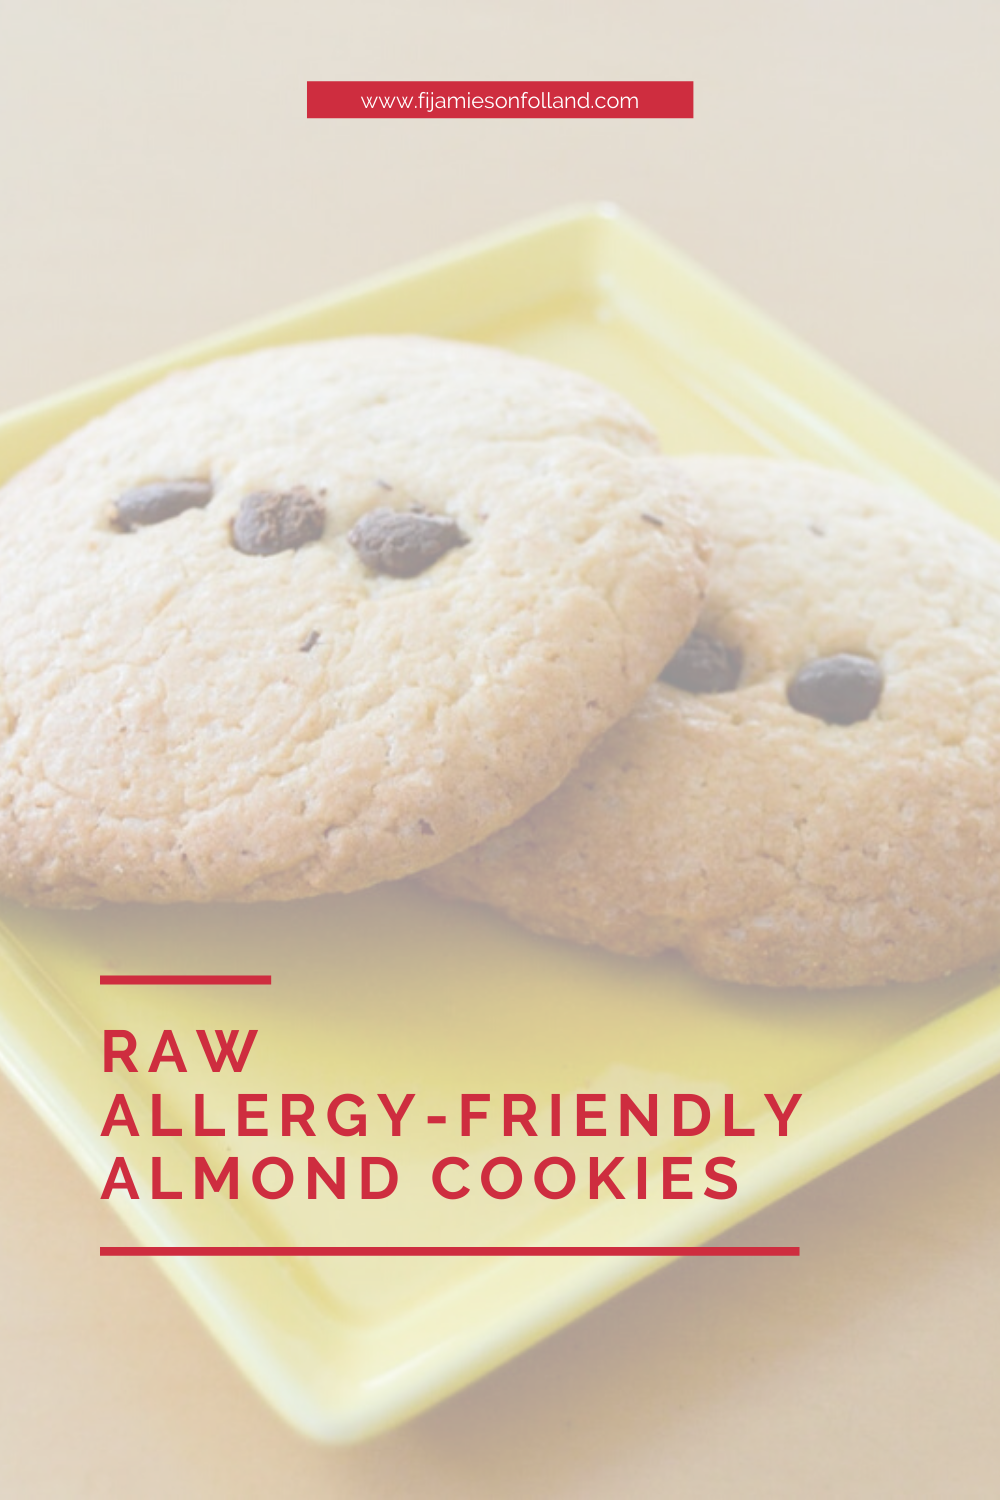 blurred picture of almond cookie